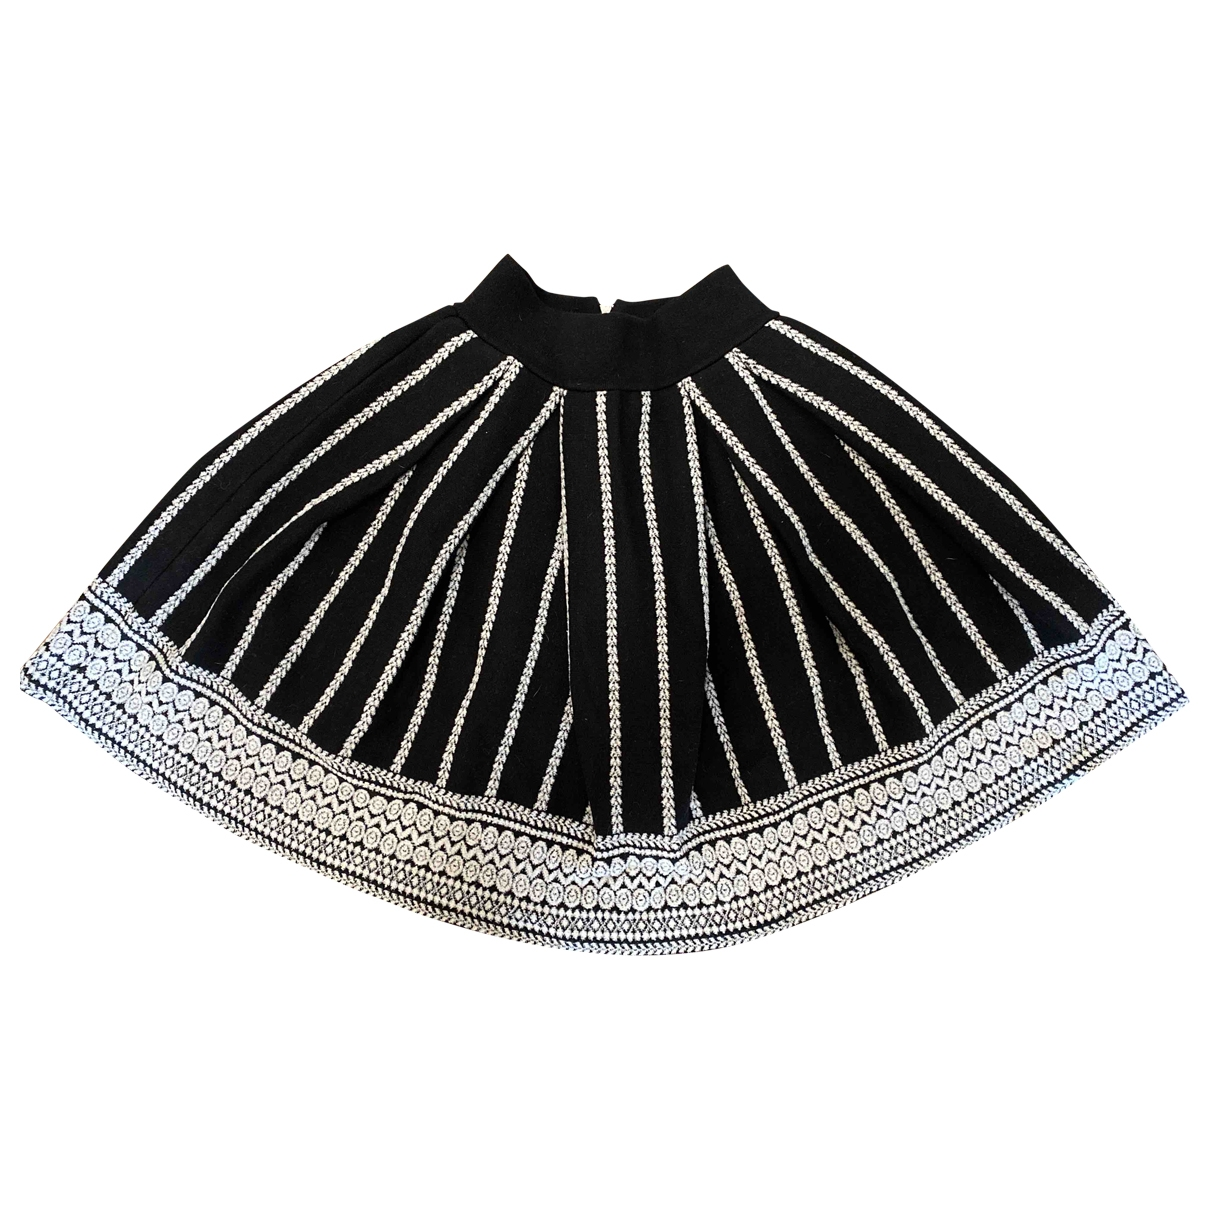 Maje \N Black Cotton skirt for Women 36 FR